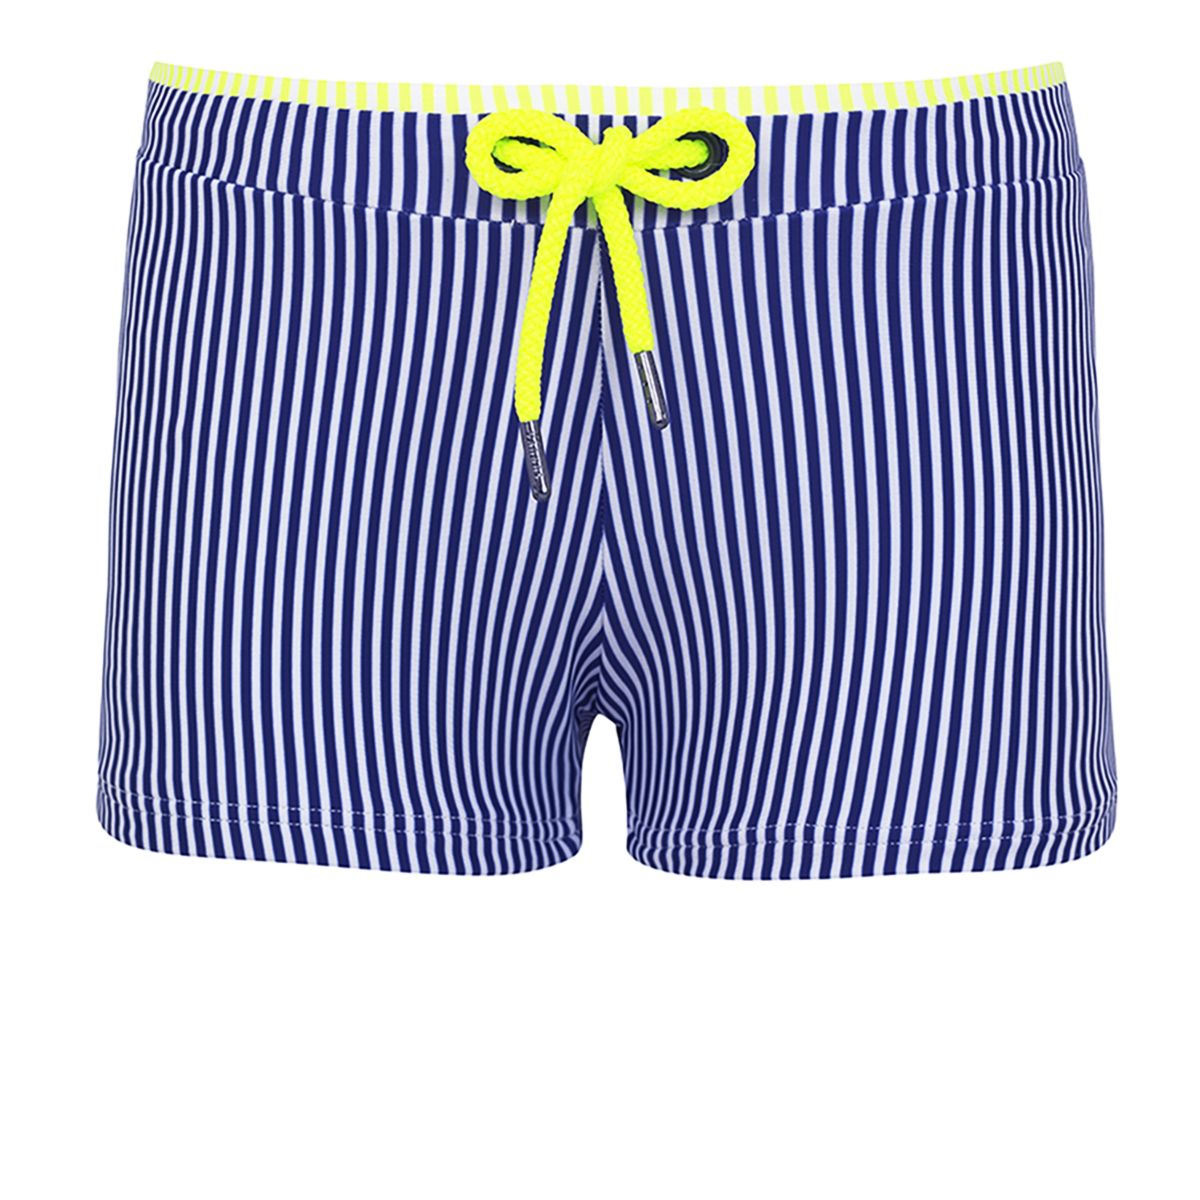 Sunuva Boys navy stripe swim trunk